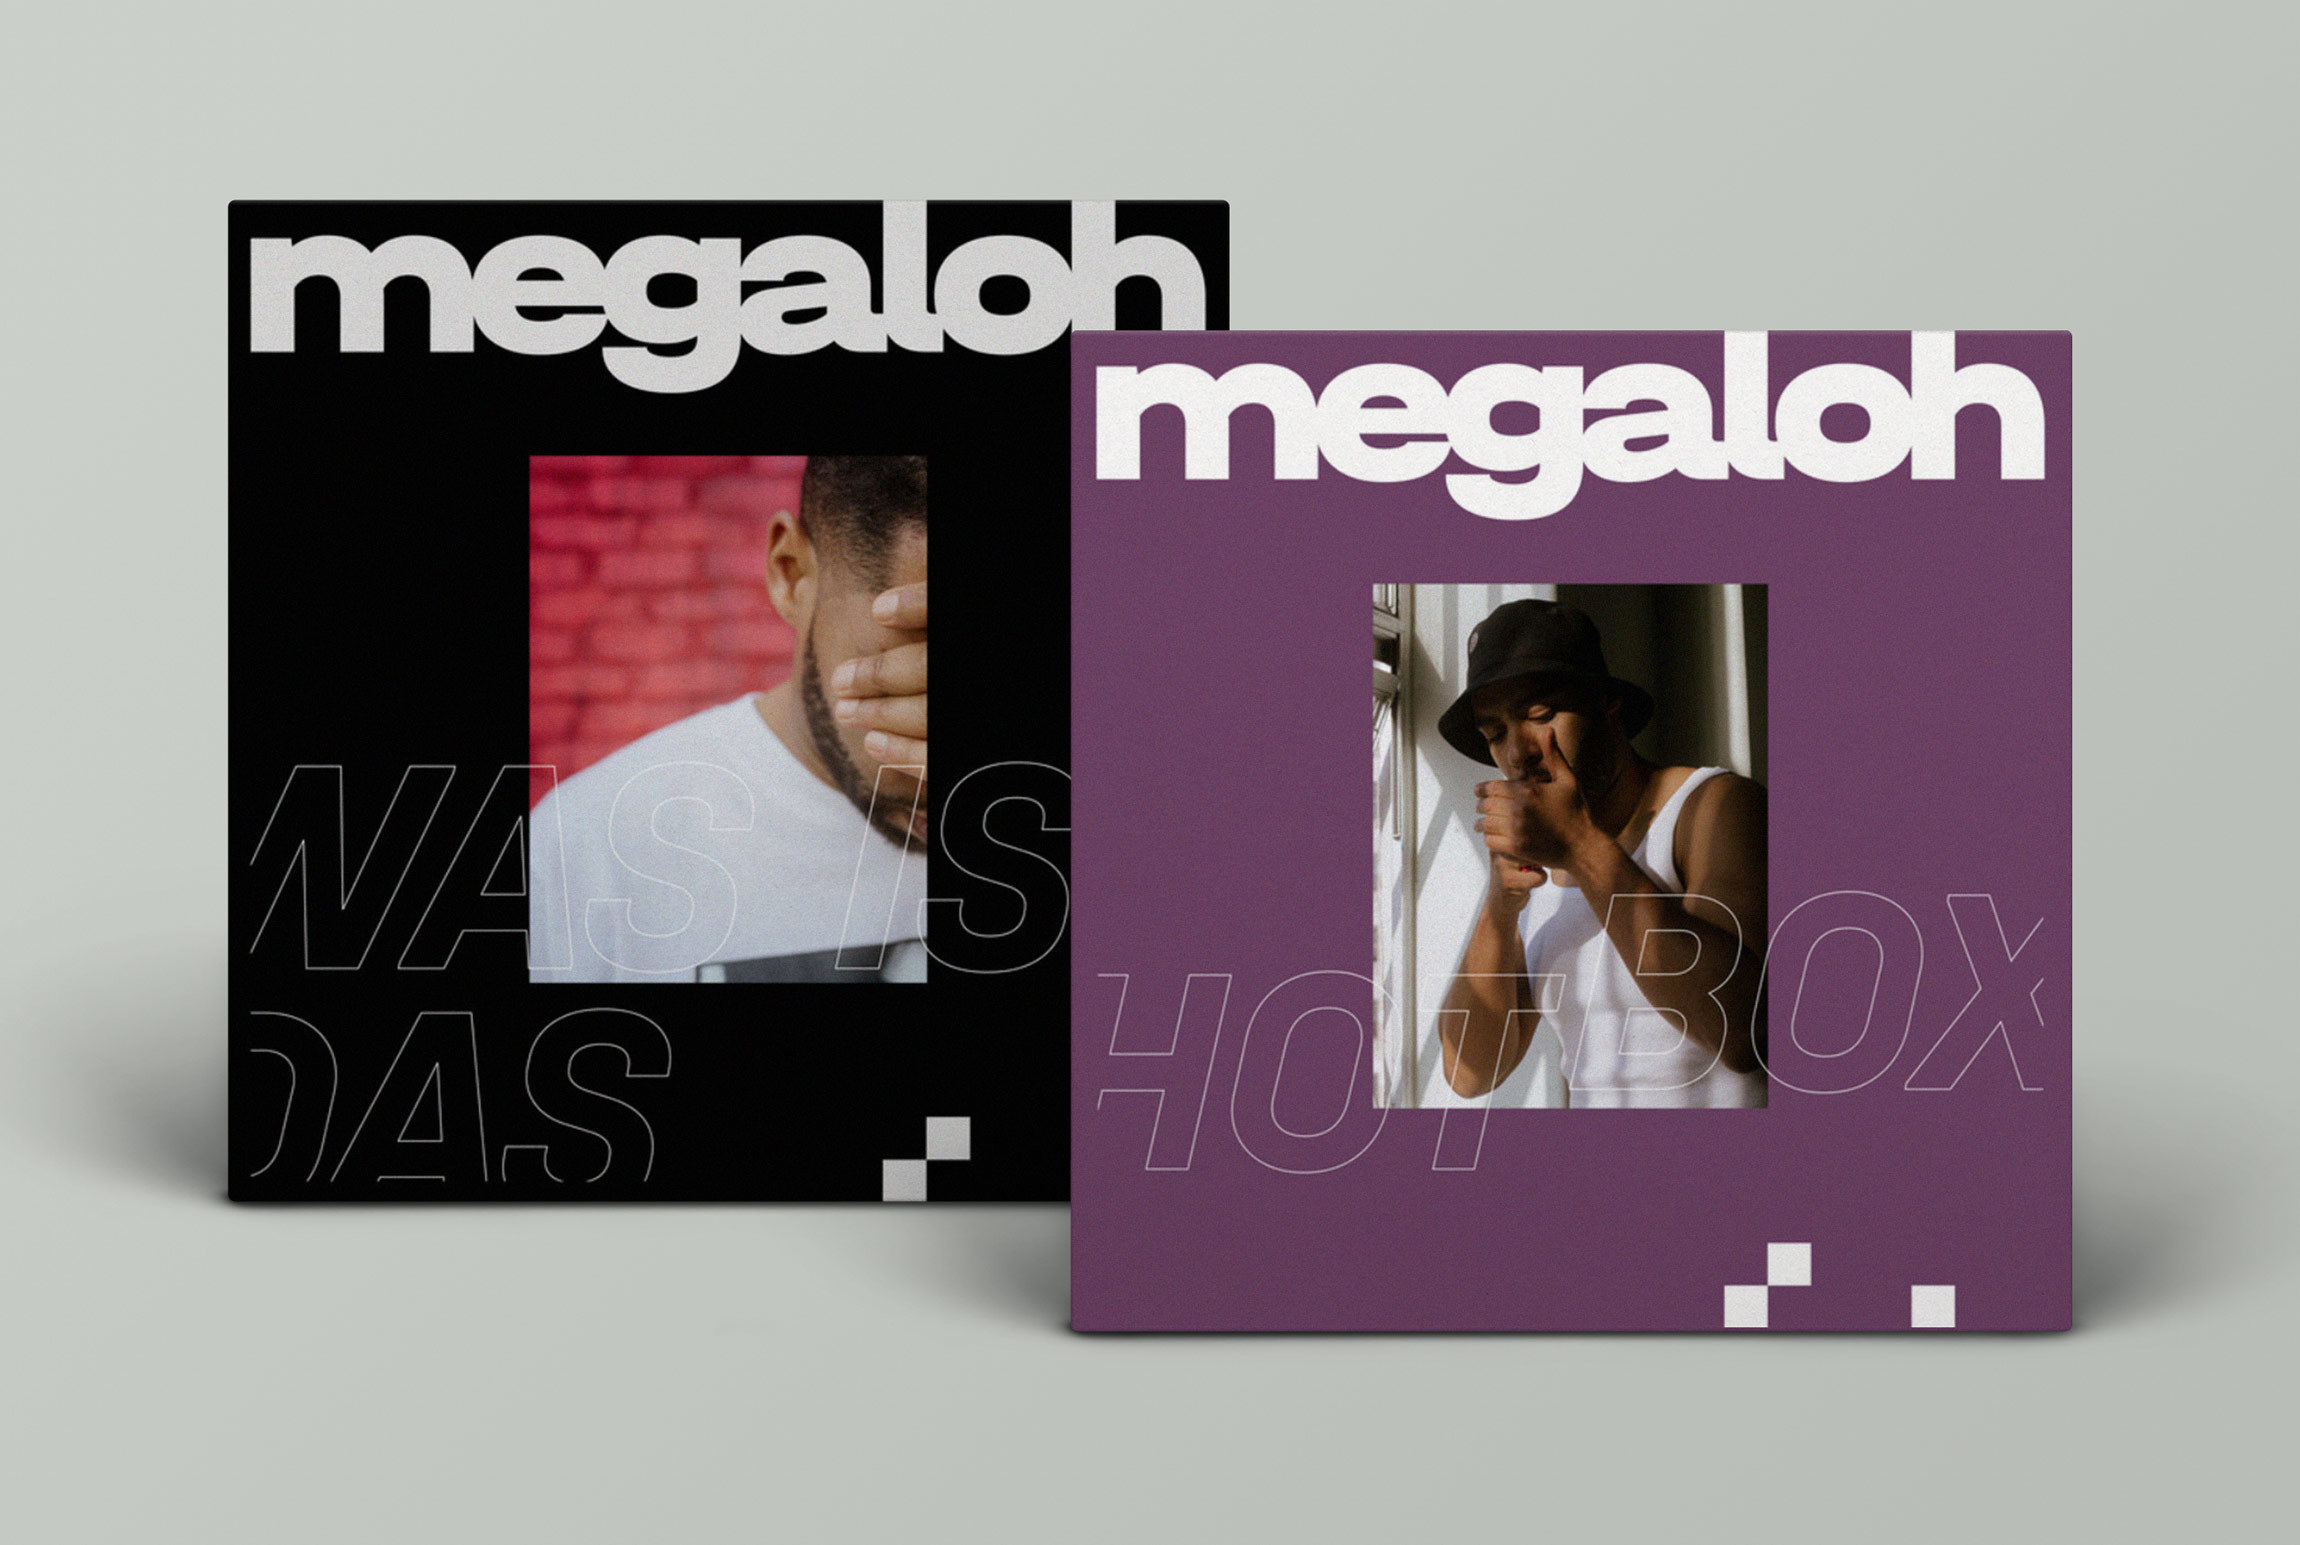 Type Mates Fonts In Use Megaloh Music Artwork Zentrale Graphics 08 Halvar Breitschrift Engschrift Singles